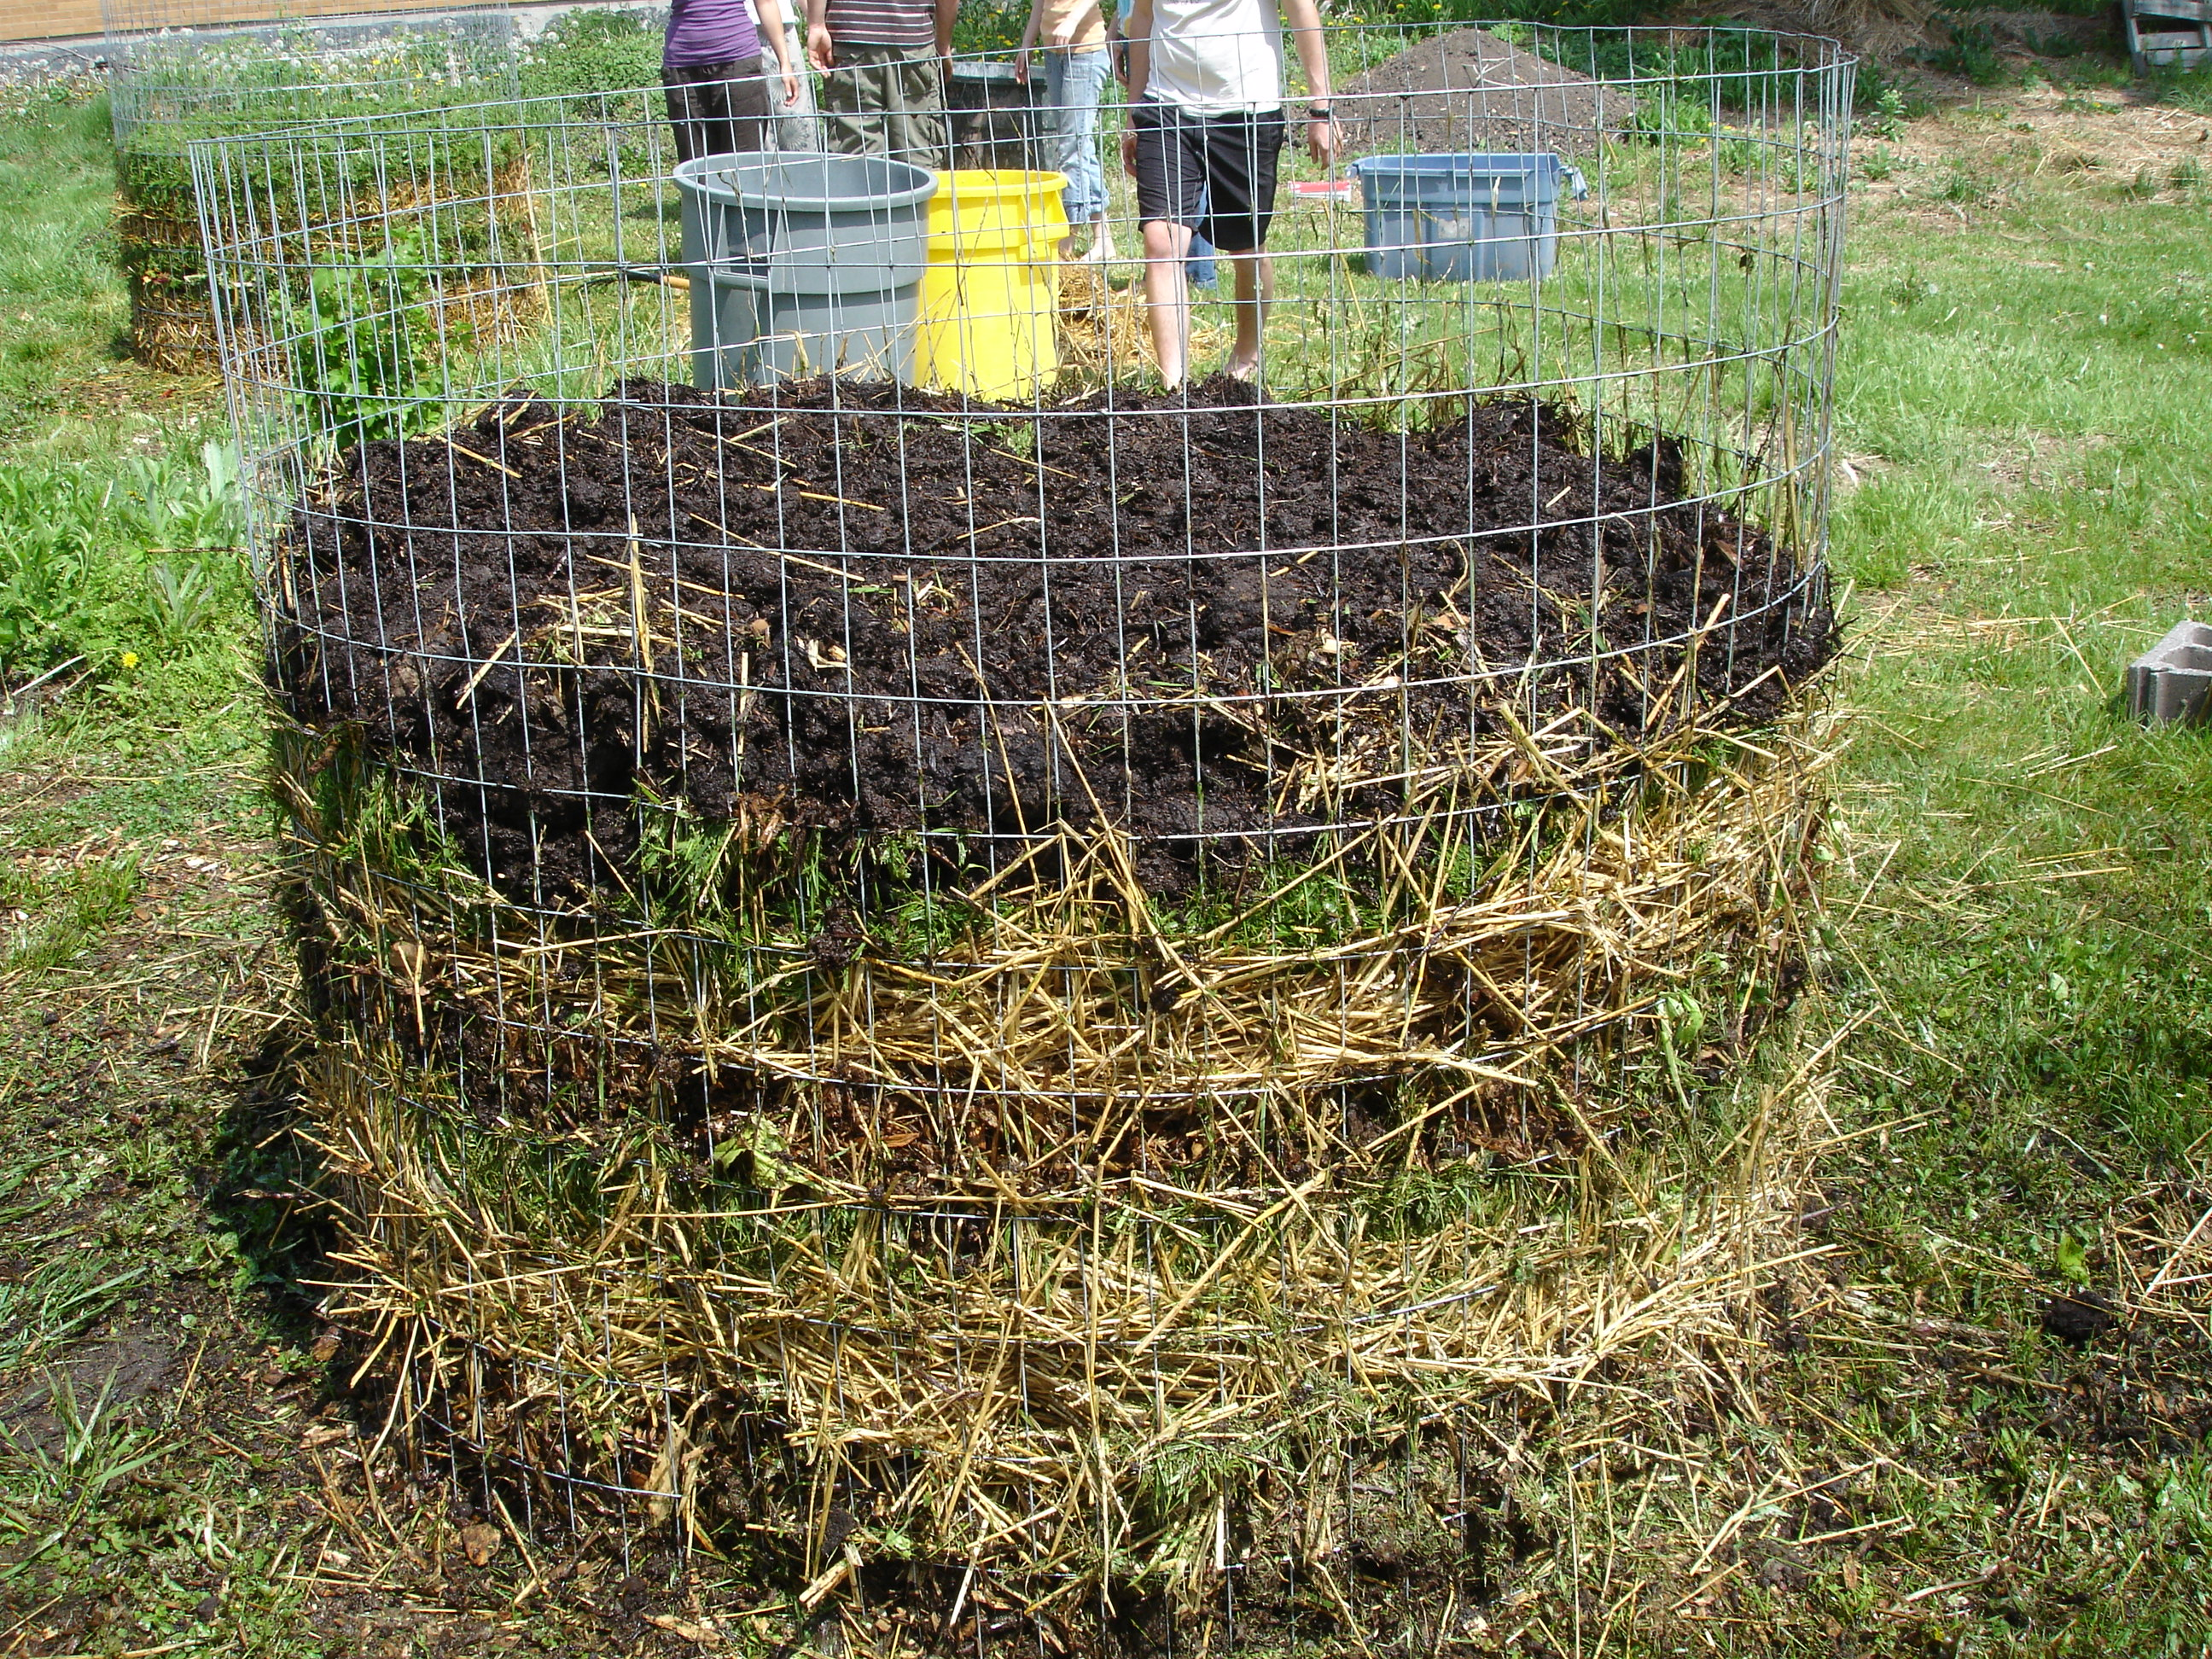 Home Composting, Turning food waste into gardening gold | Edible Indy